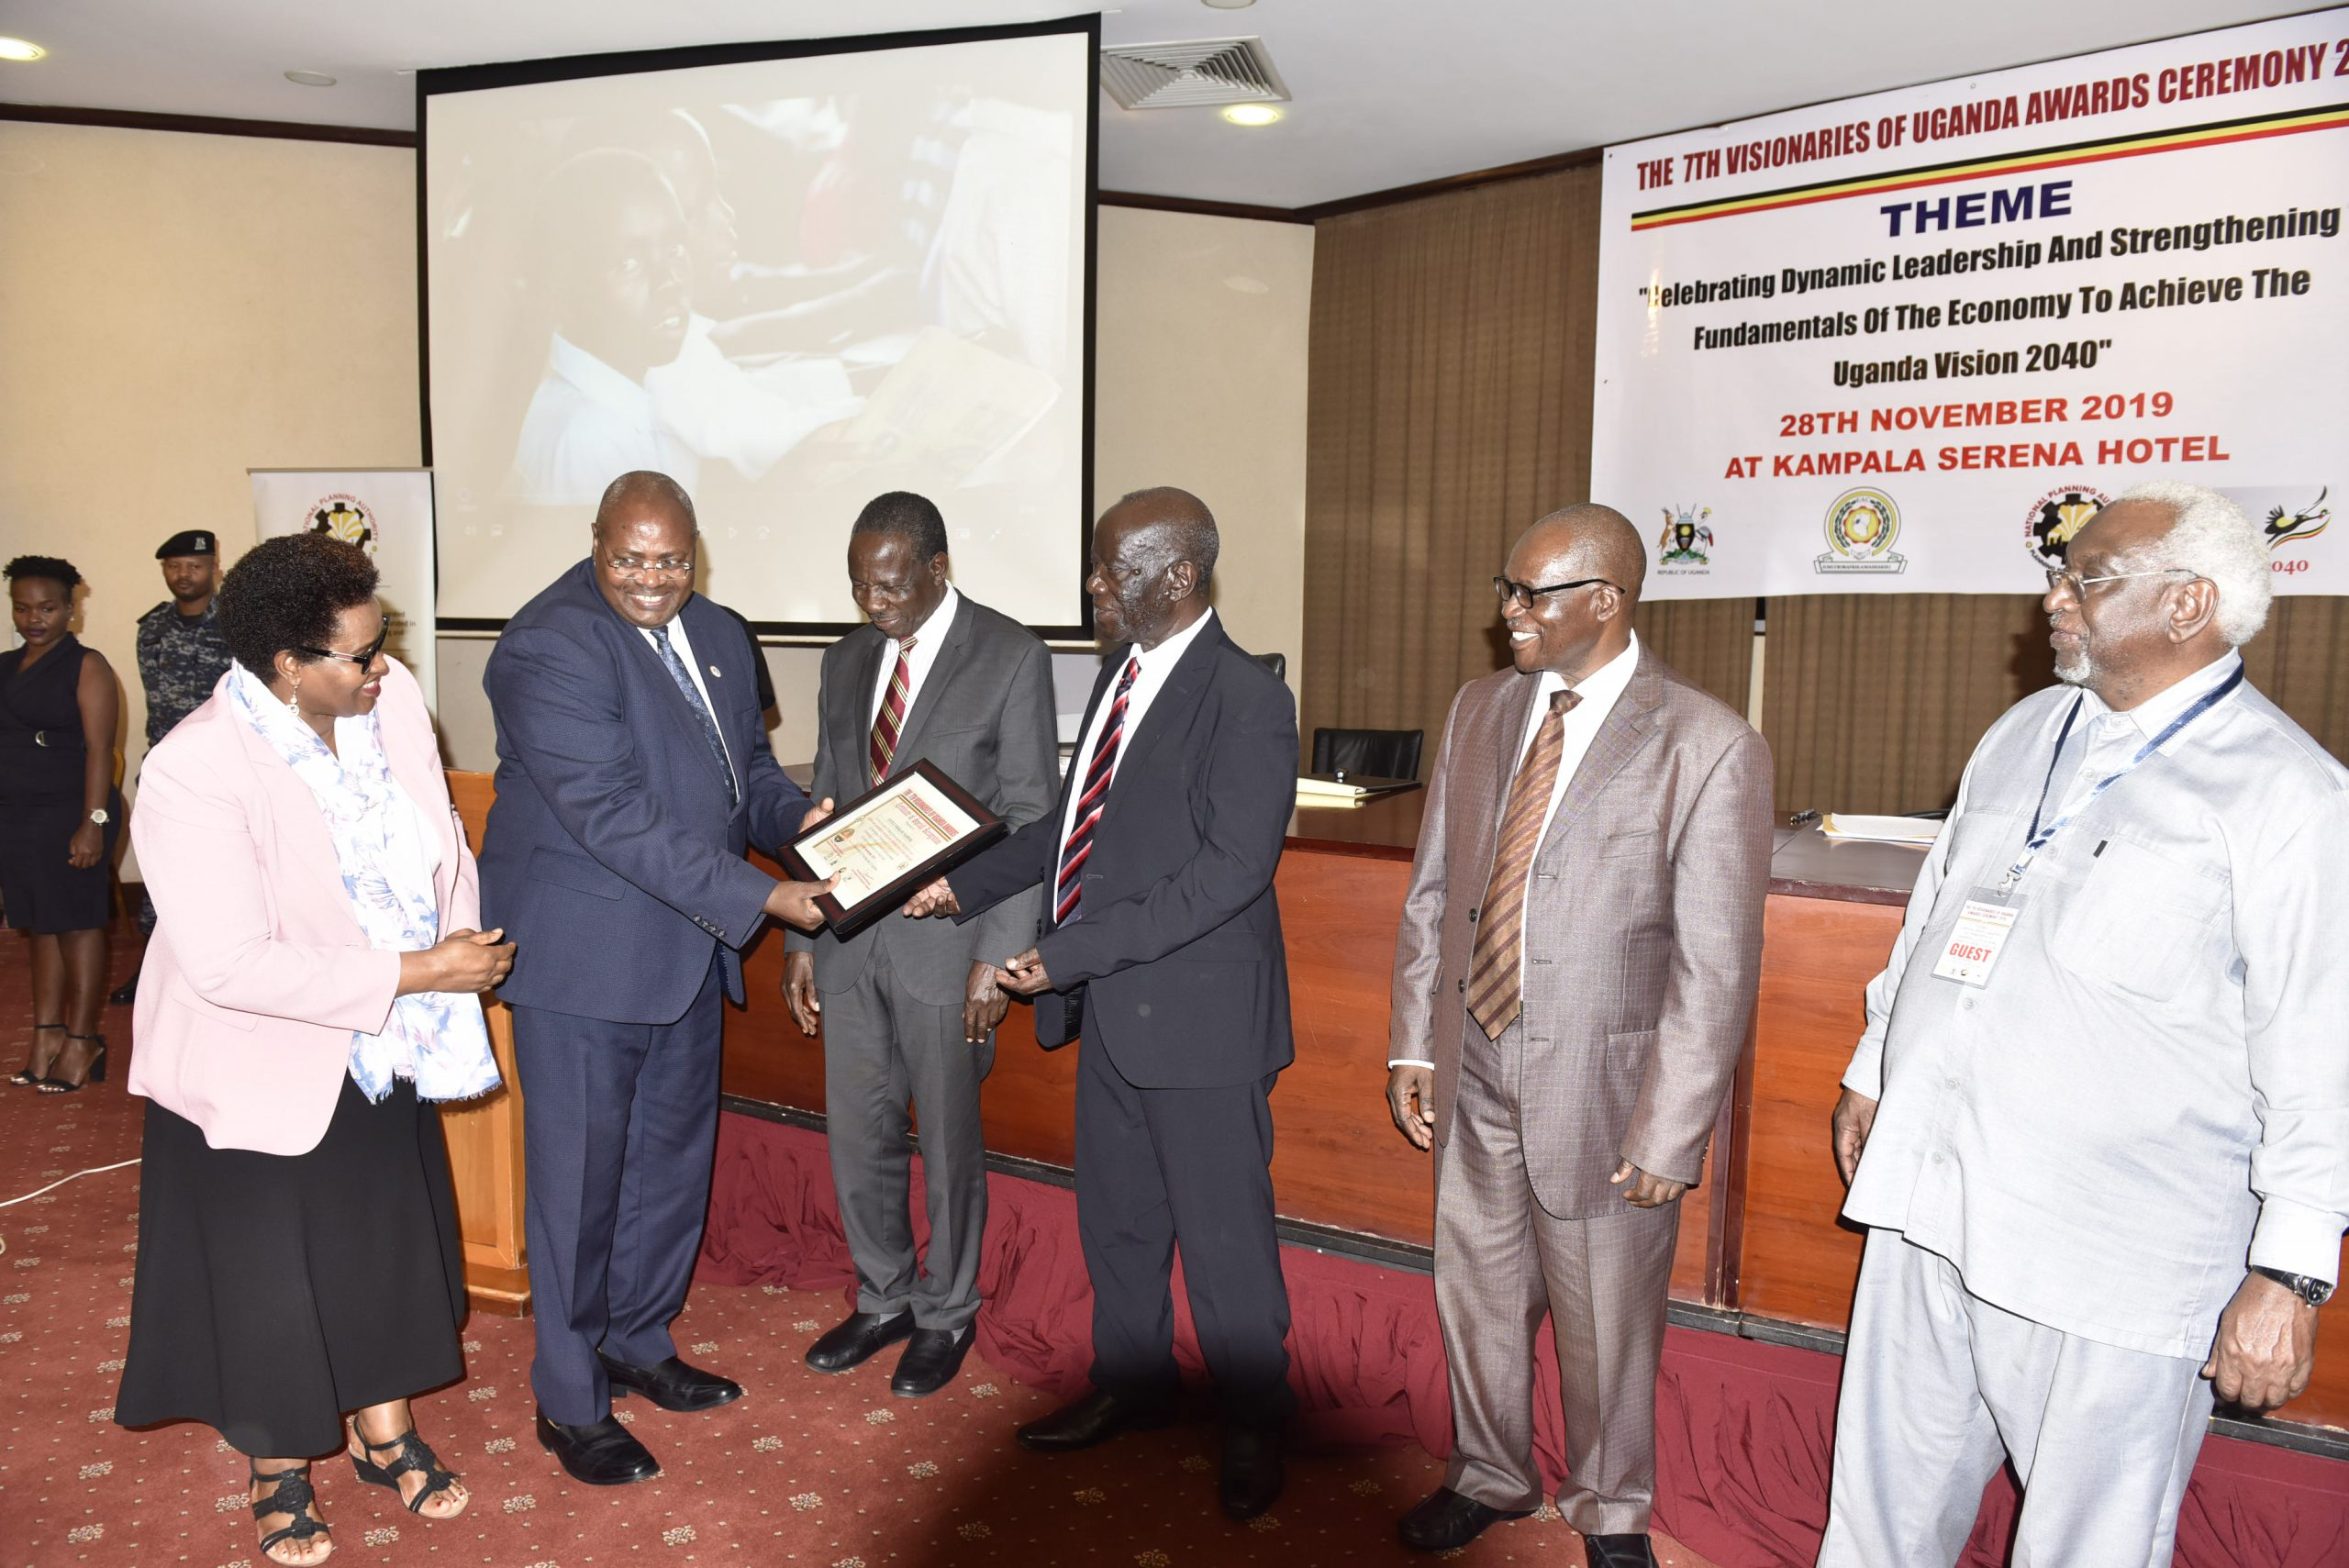 Principal Judge High Court of Uganda, Justice Yorokamu Bamwine receiving the Visionary Award for his contribution to the judiciary